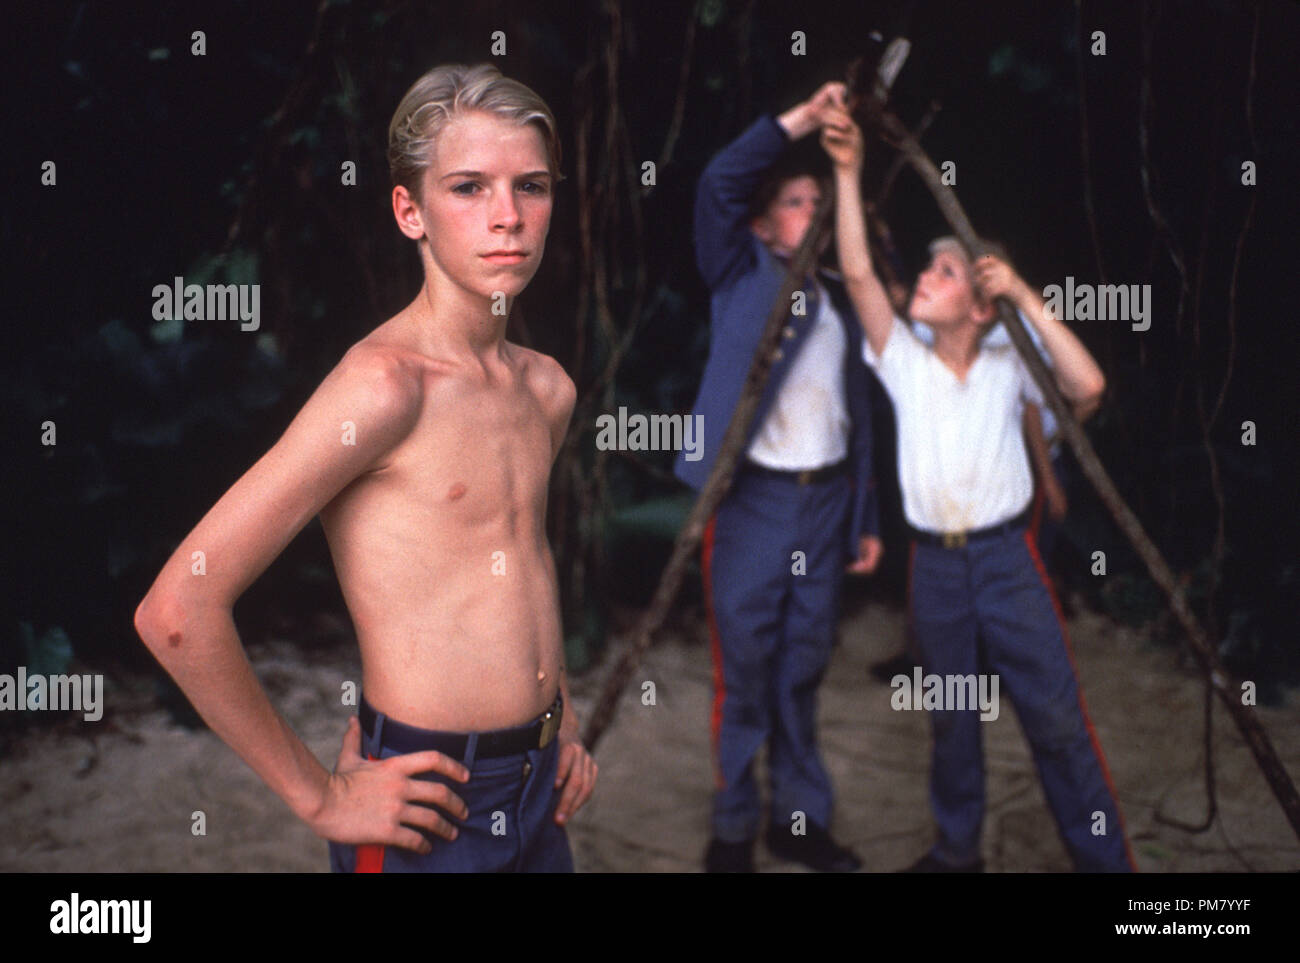 Lord Of The Flies Stock Photos Amp Lord Of The Flies Stock